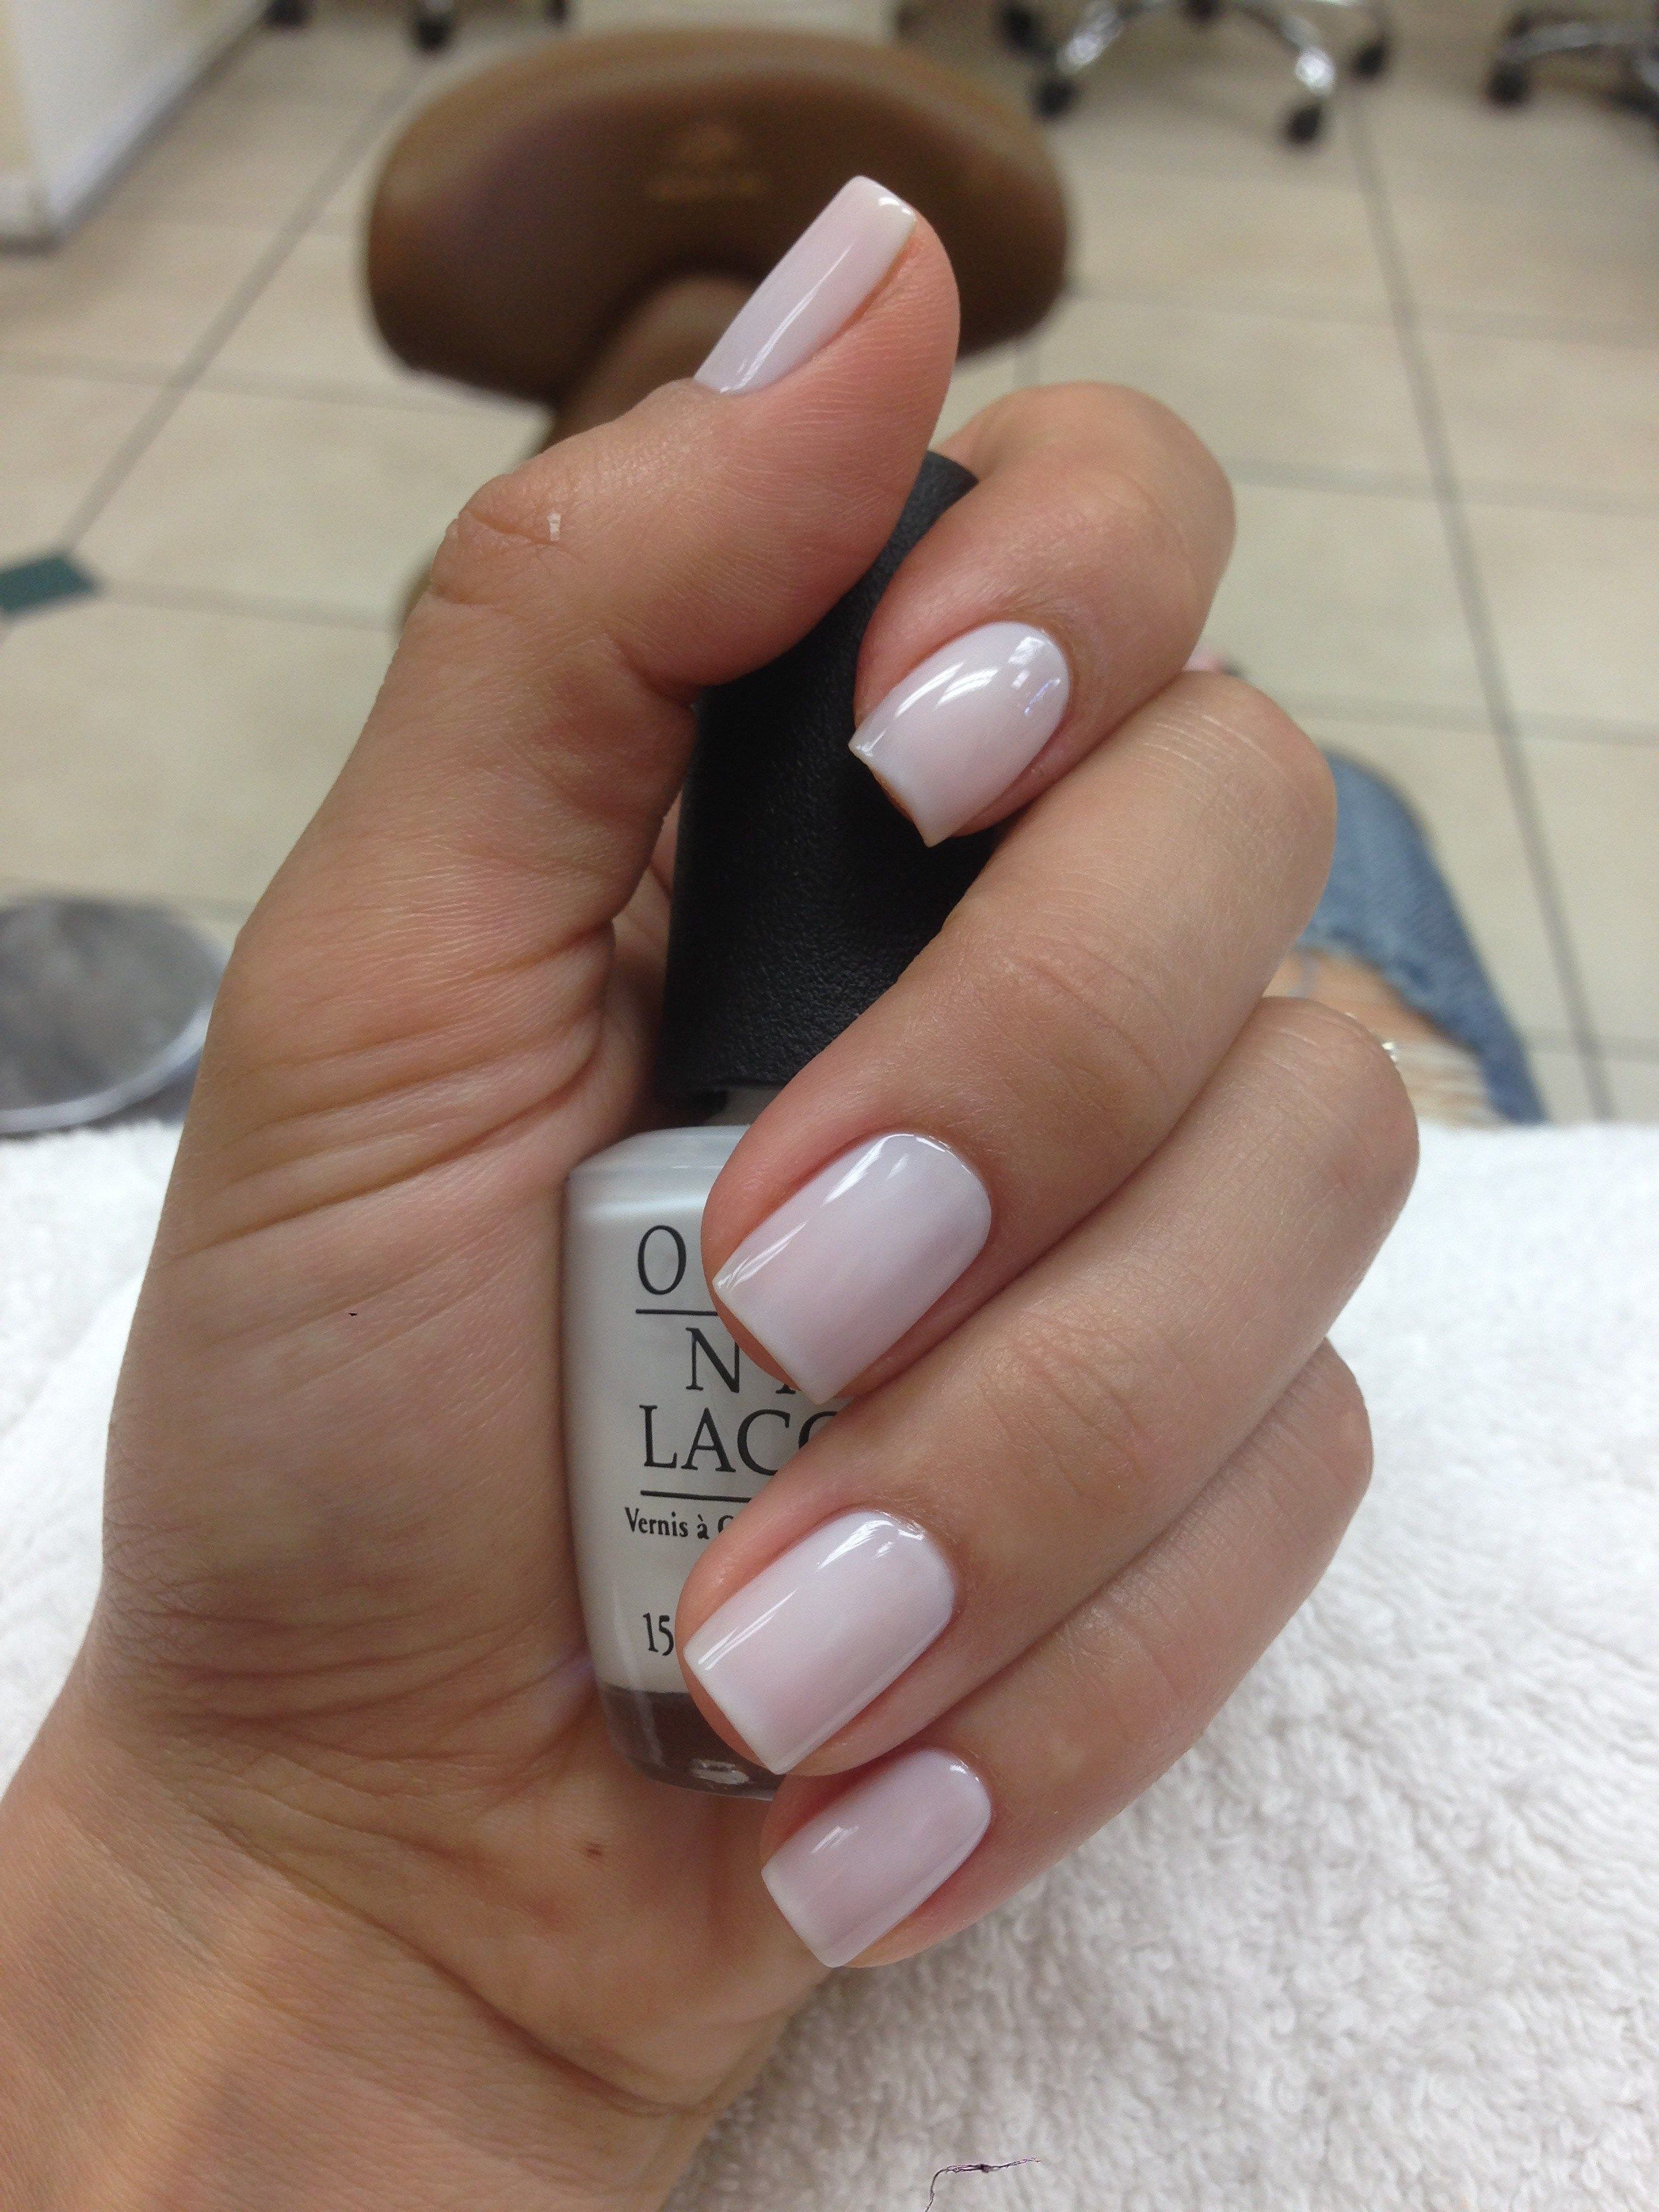 Pin by Juliette Purssey on Nails | Pinterest | Opi funny bunny, Mani ...